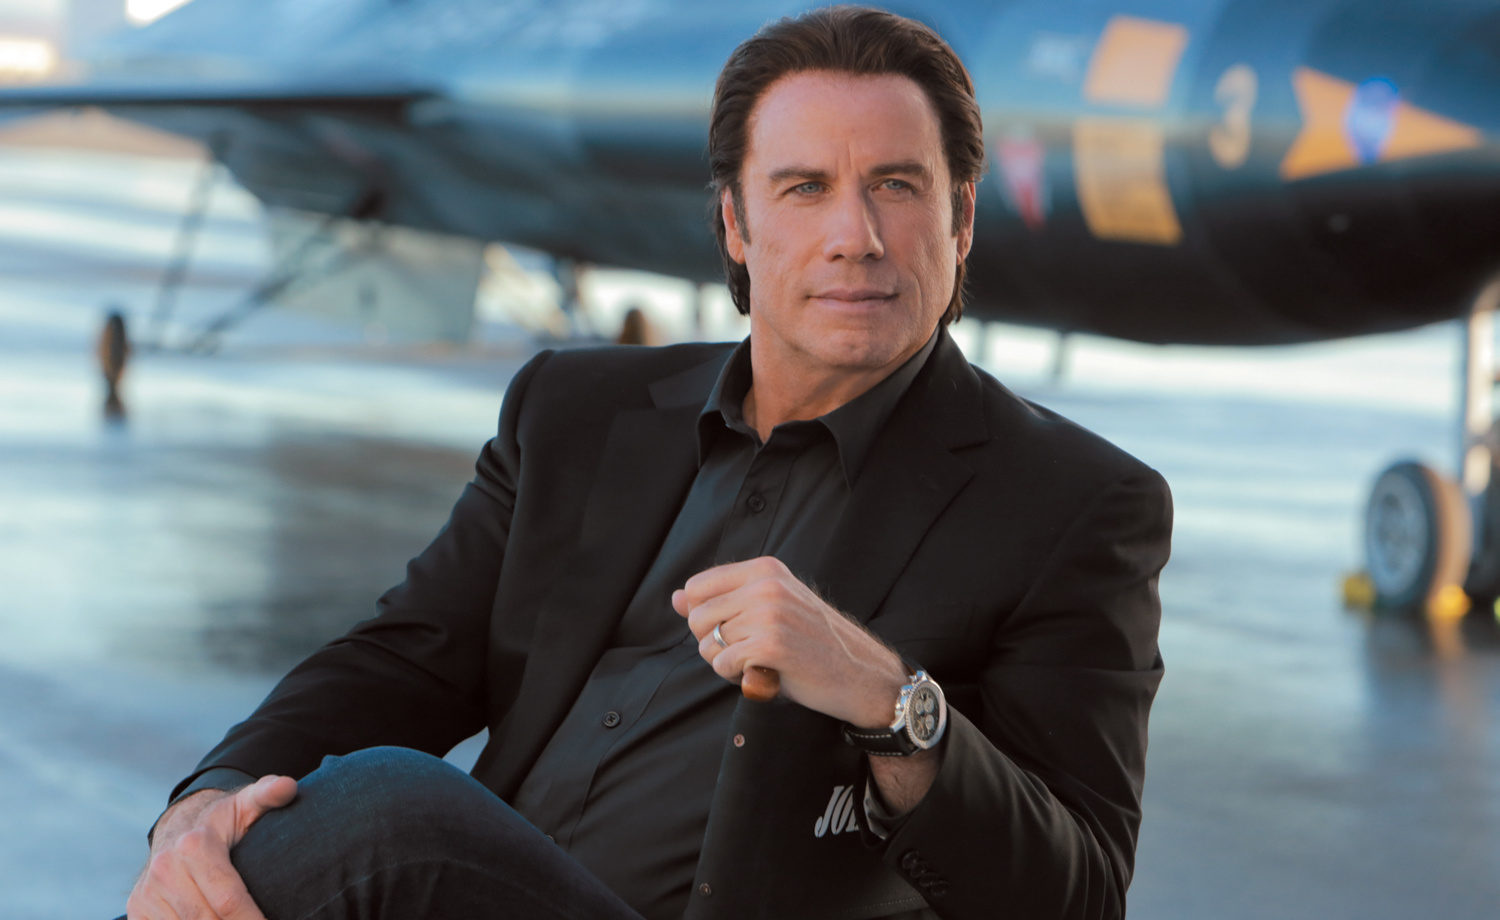 John travolta and the north american x 15 two flying legends in the breitling sky watchonista for John travolta breitling